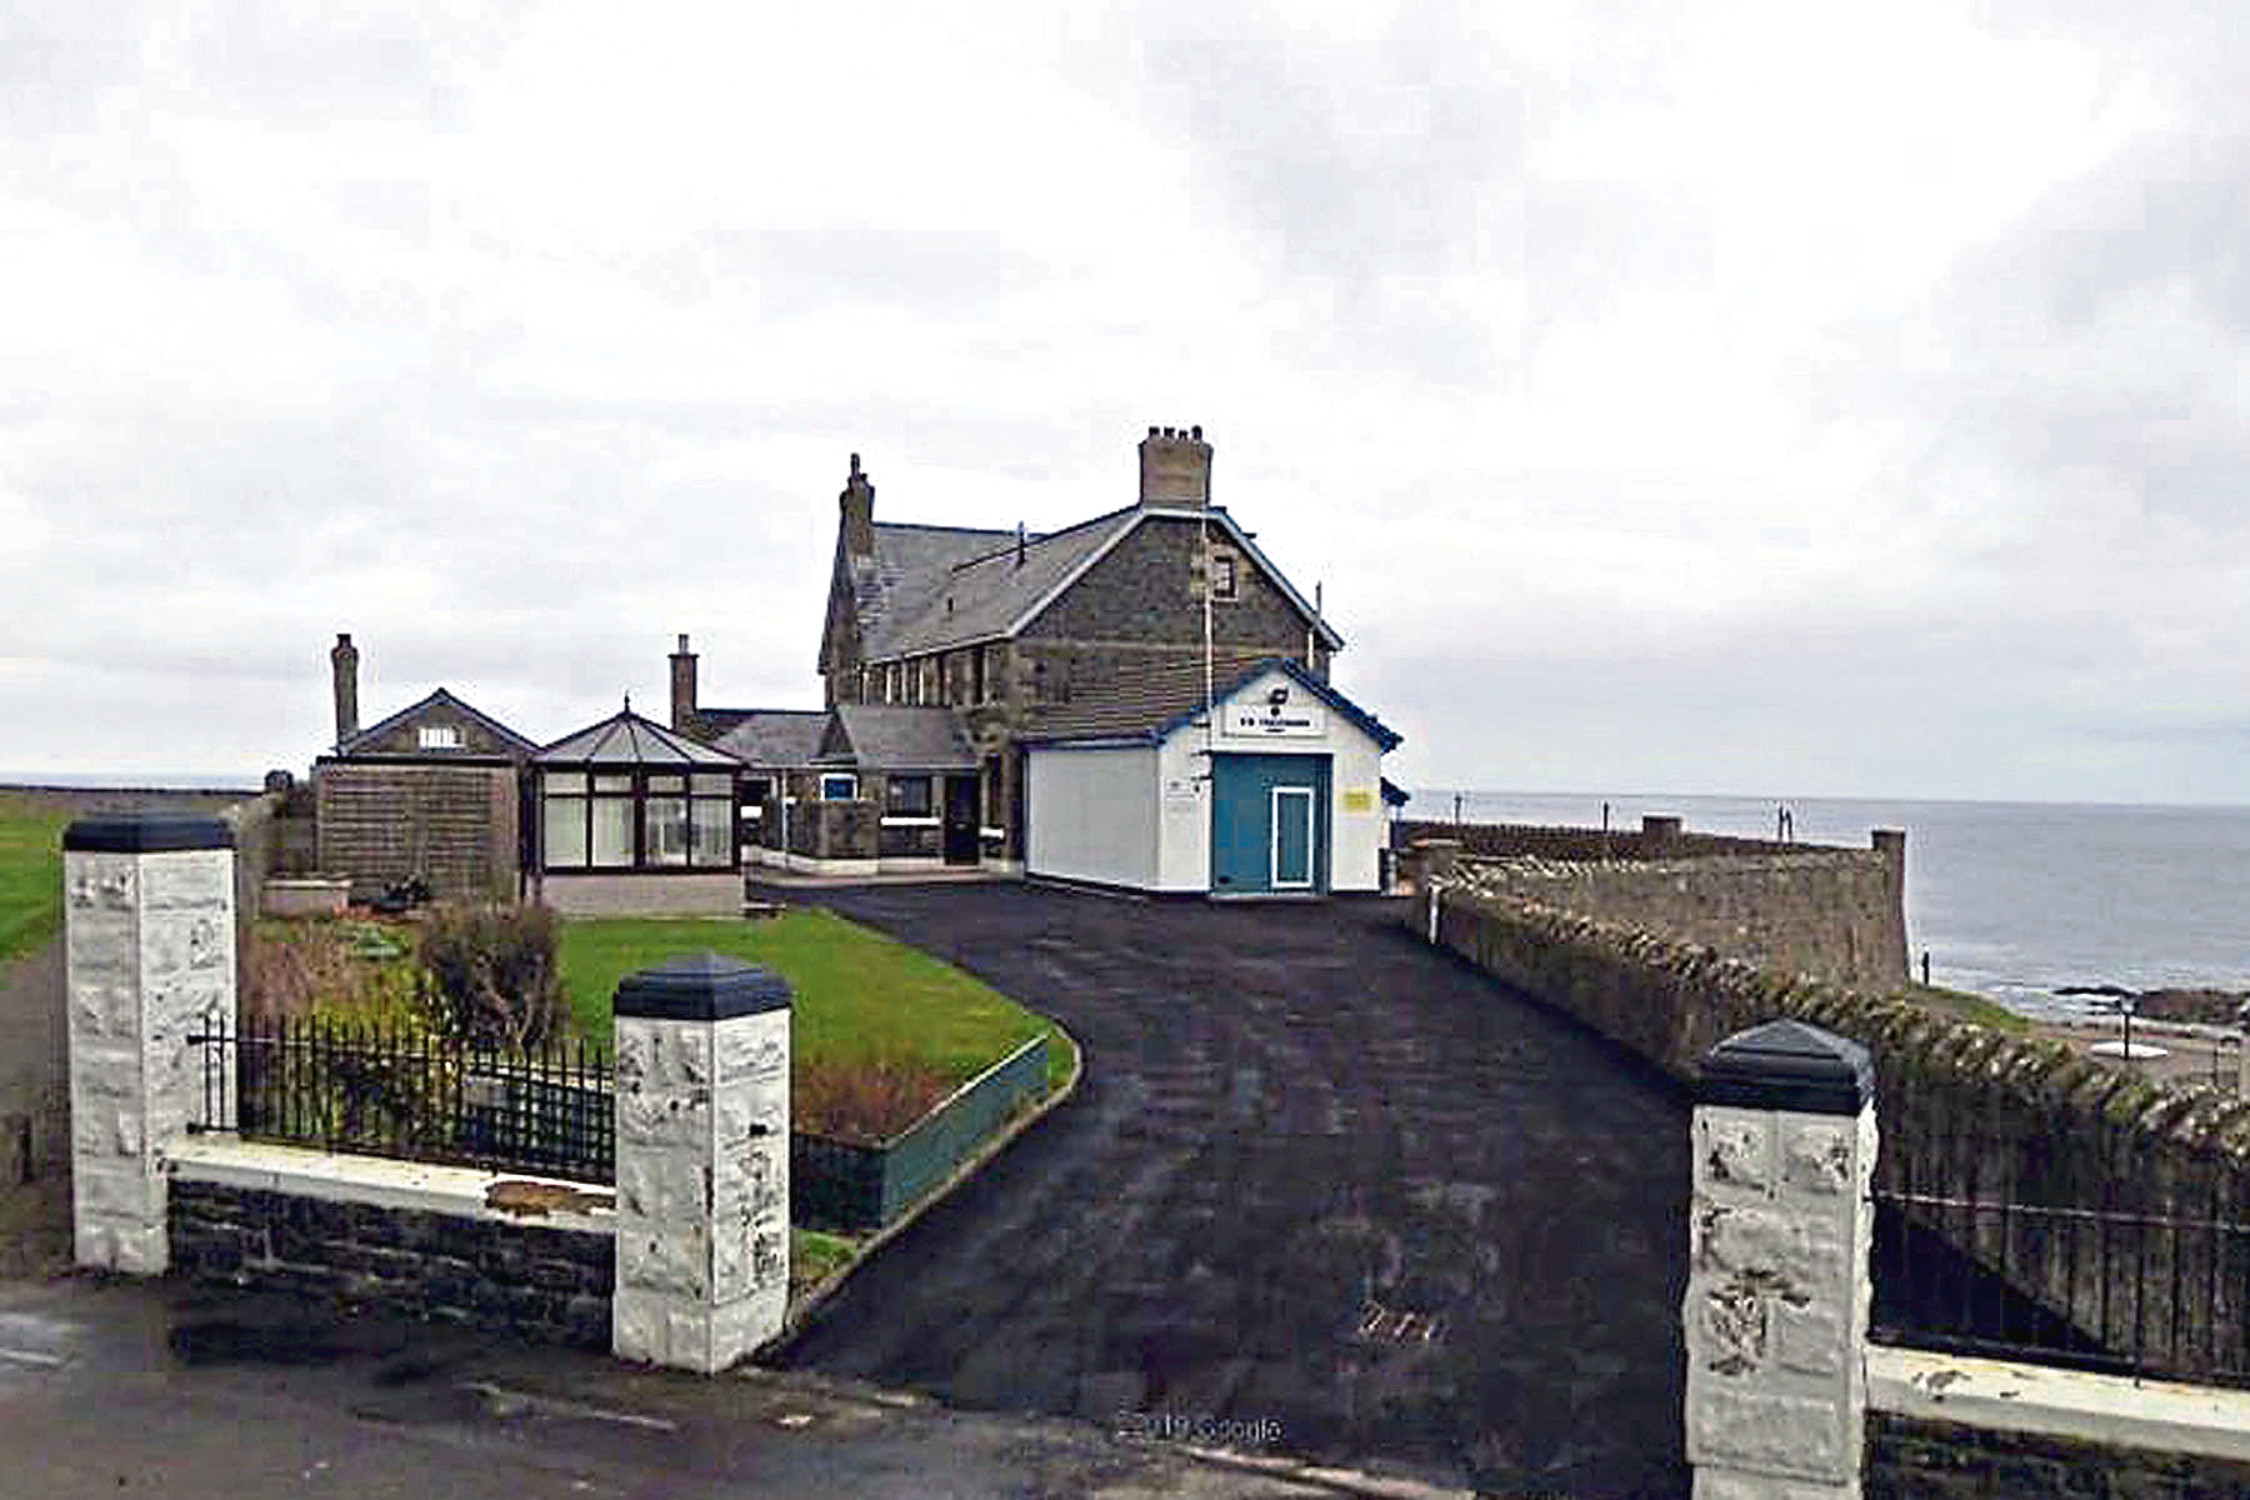 The current Coastguard station in Banff